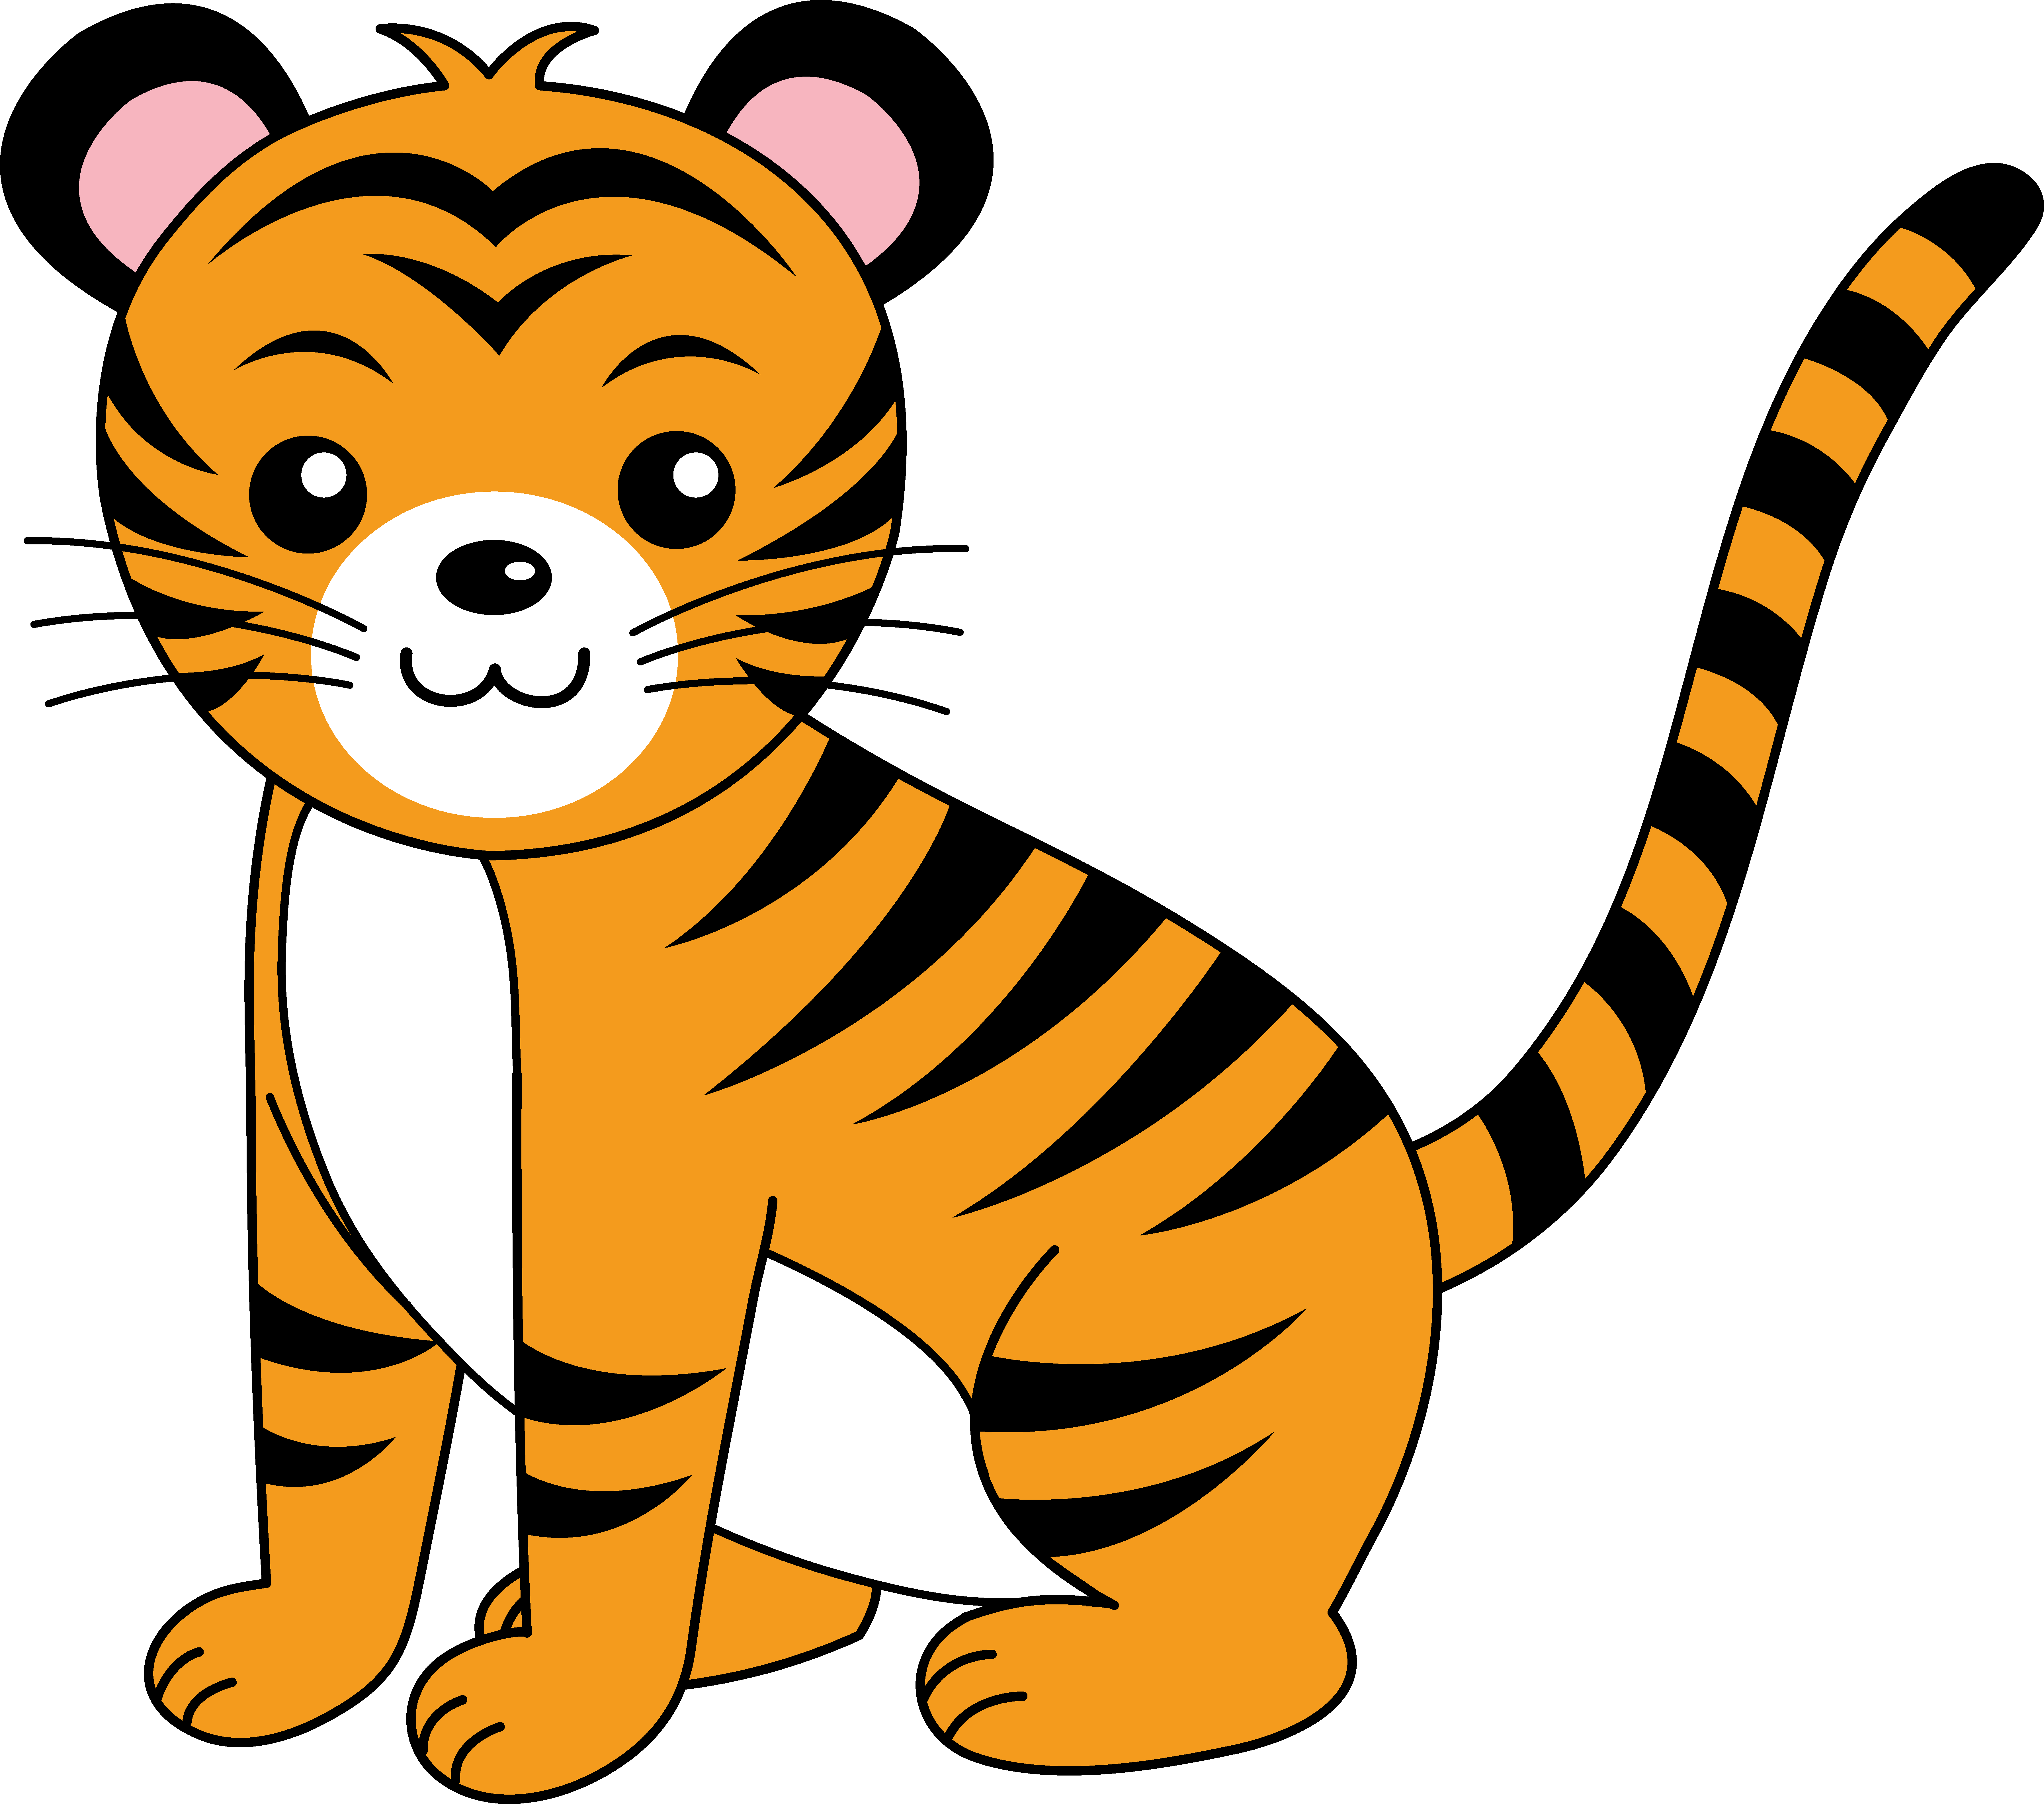 Toger clipart image royalty free library adorable clipart free | Free Clip Art | kids | Tiger cub ... image royalty free library